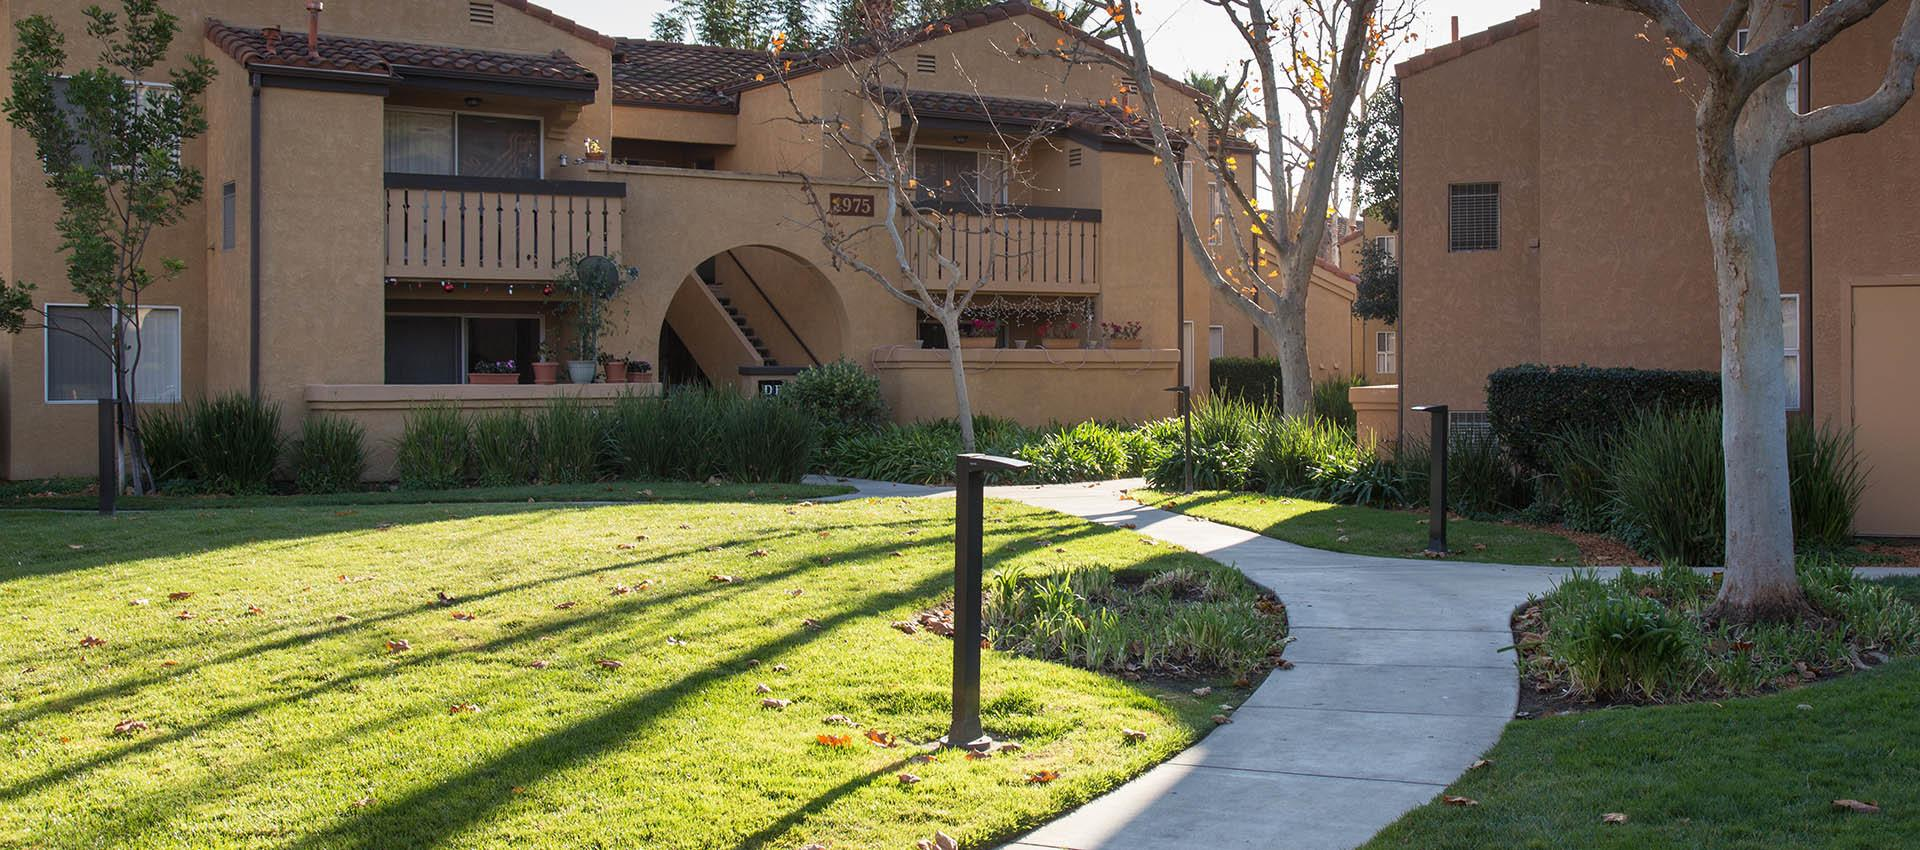 The grounds at Shadow Ridge Apartment Homes in Simi Valley, CA